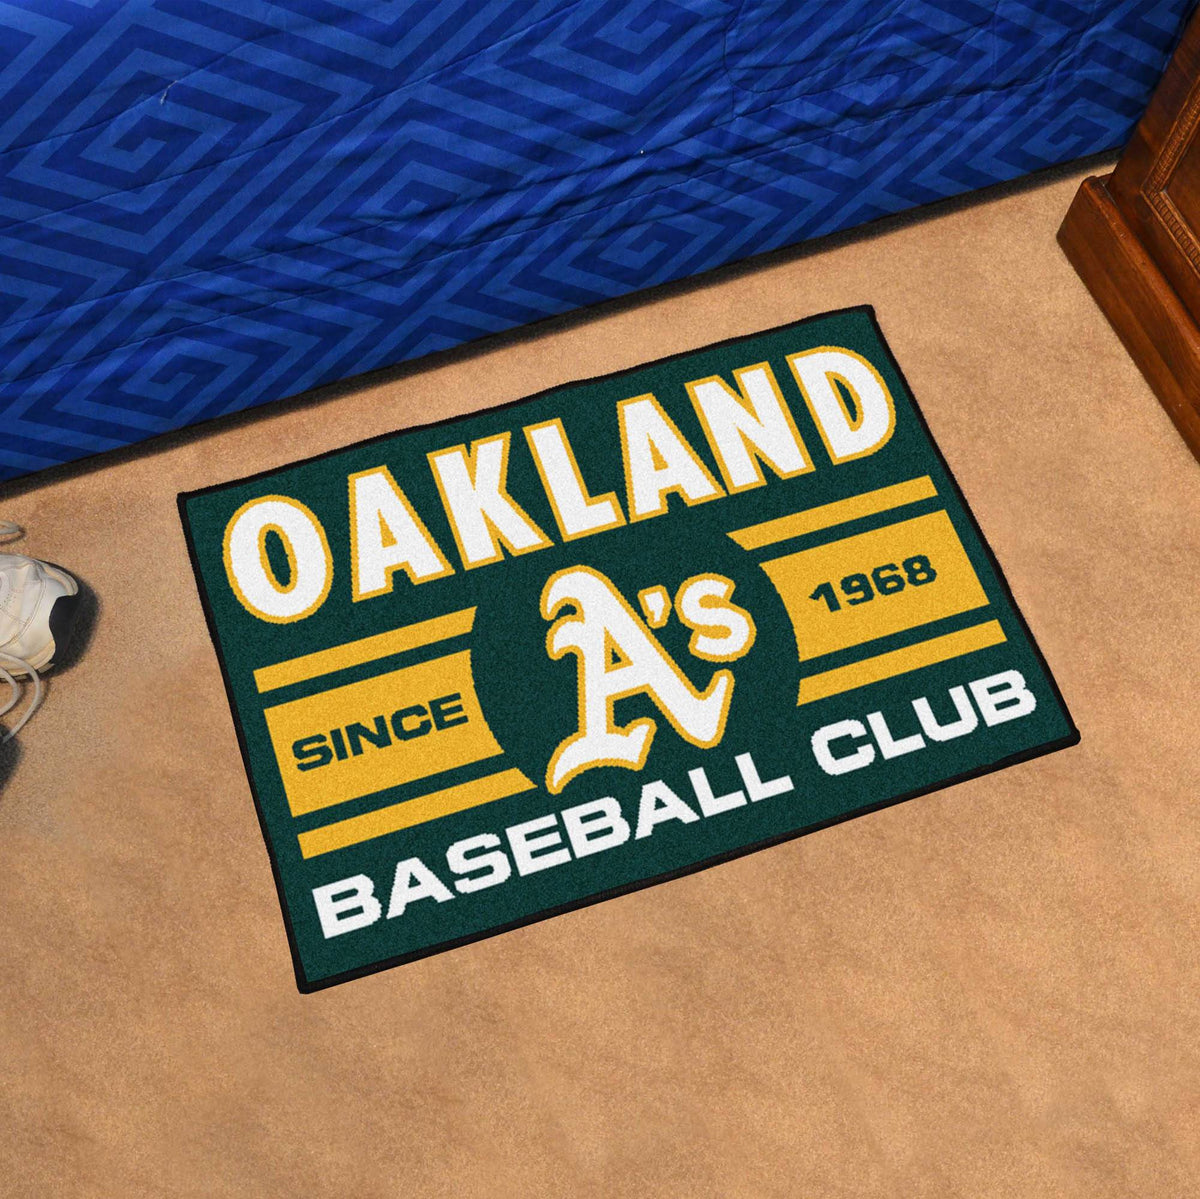 MLB - Uniform Starter Mat MLB Mats, Rectangular Mats, Uniform Starter Mat, MLB, Home Fan Mats Oakland Athletics